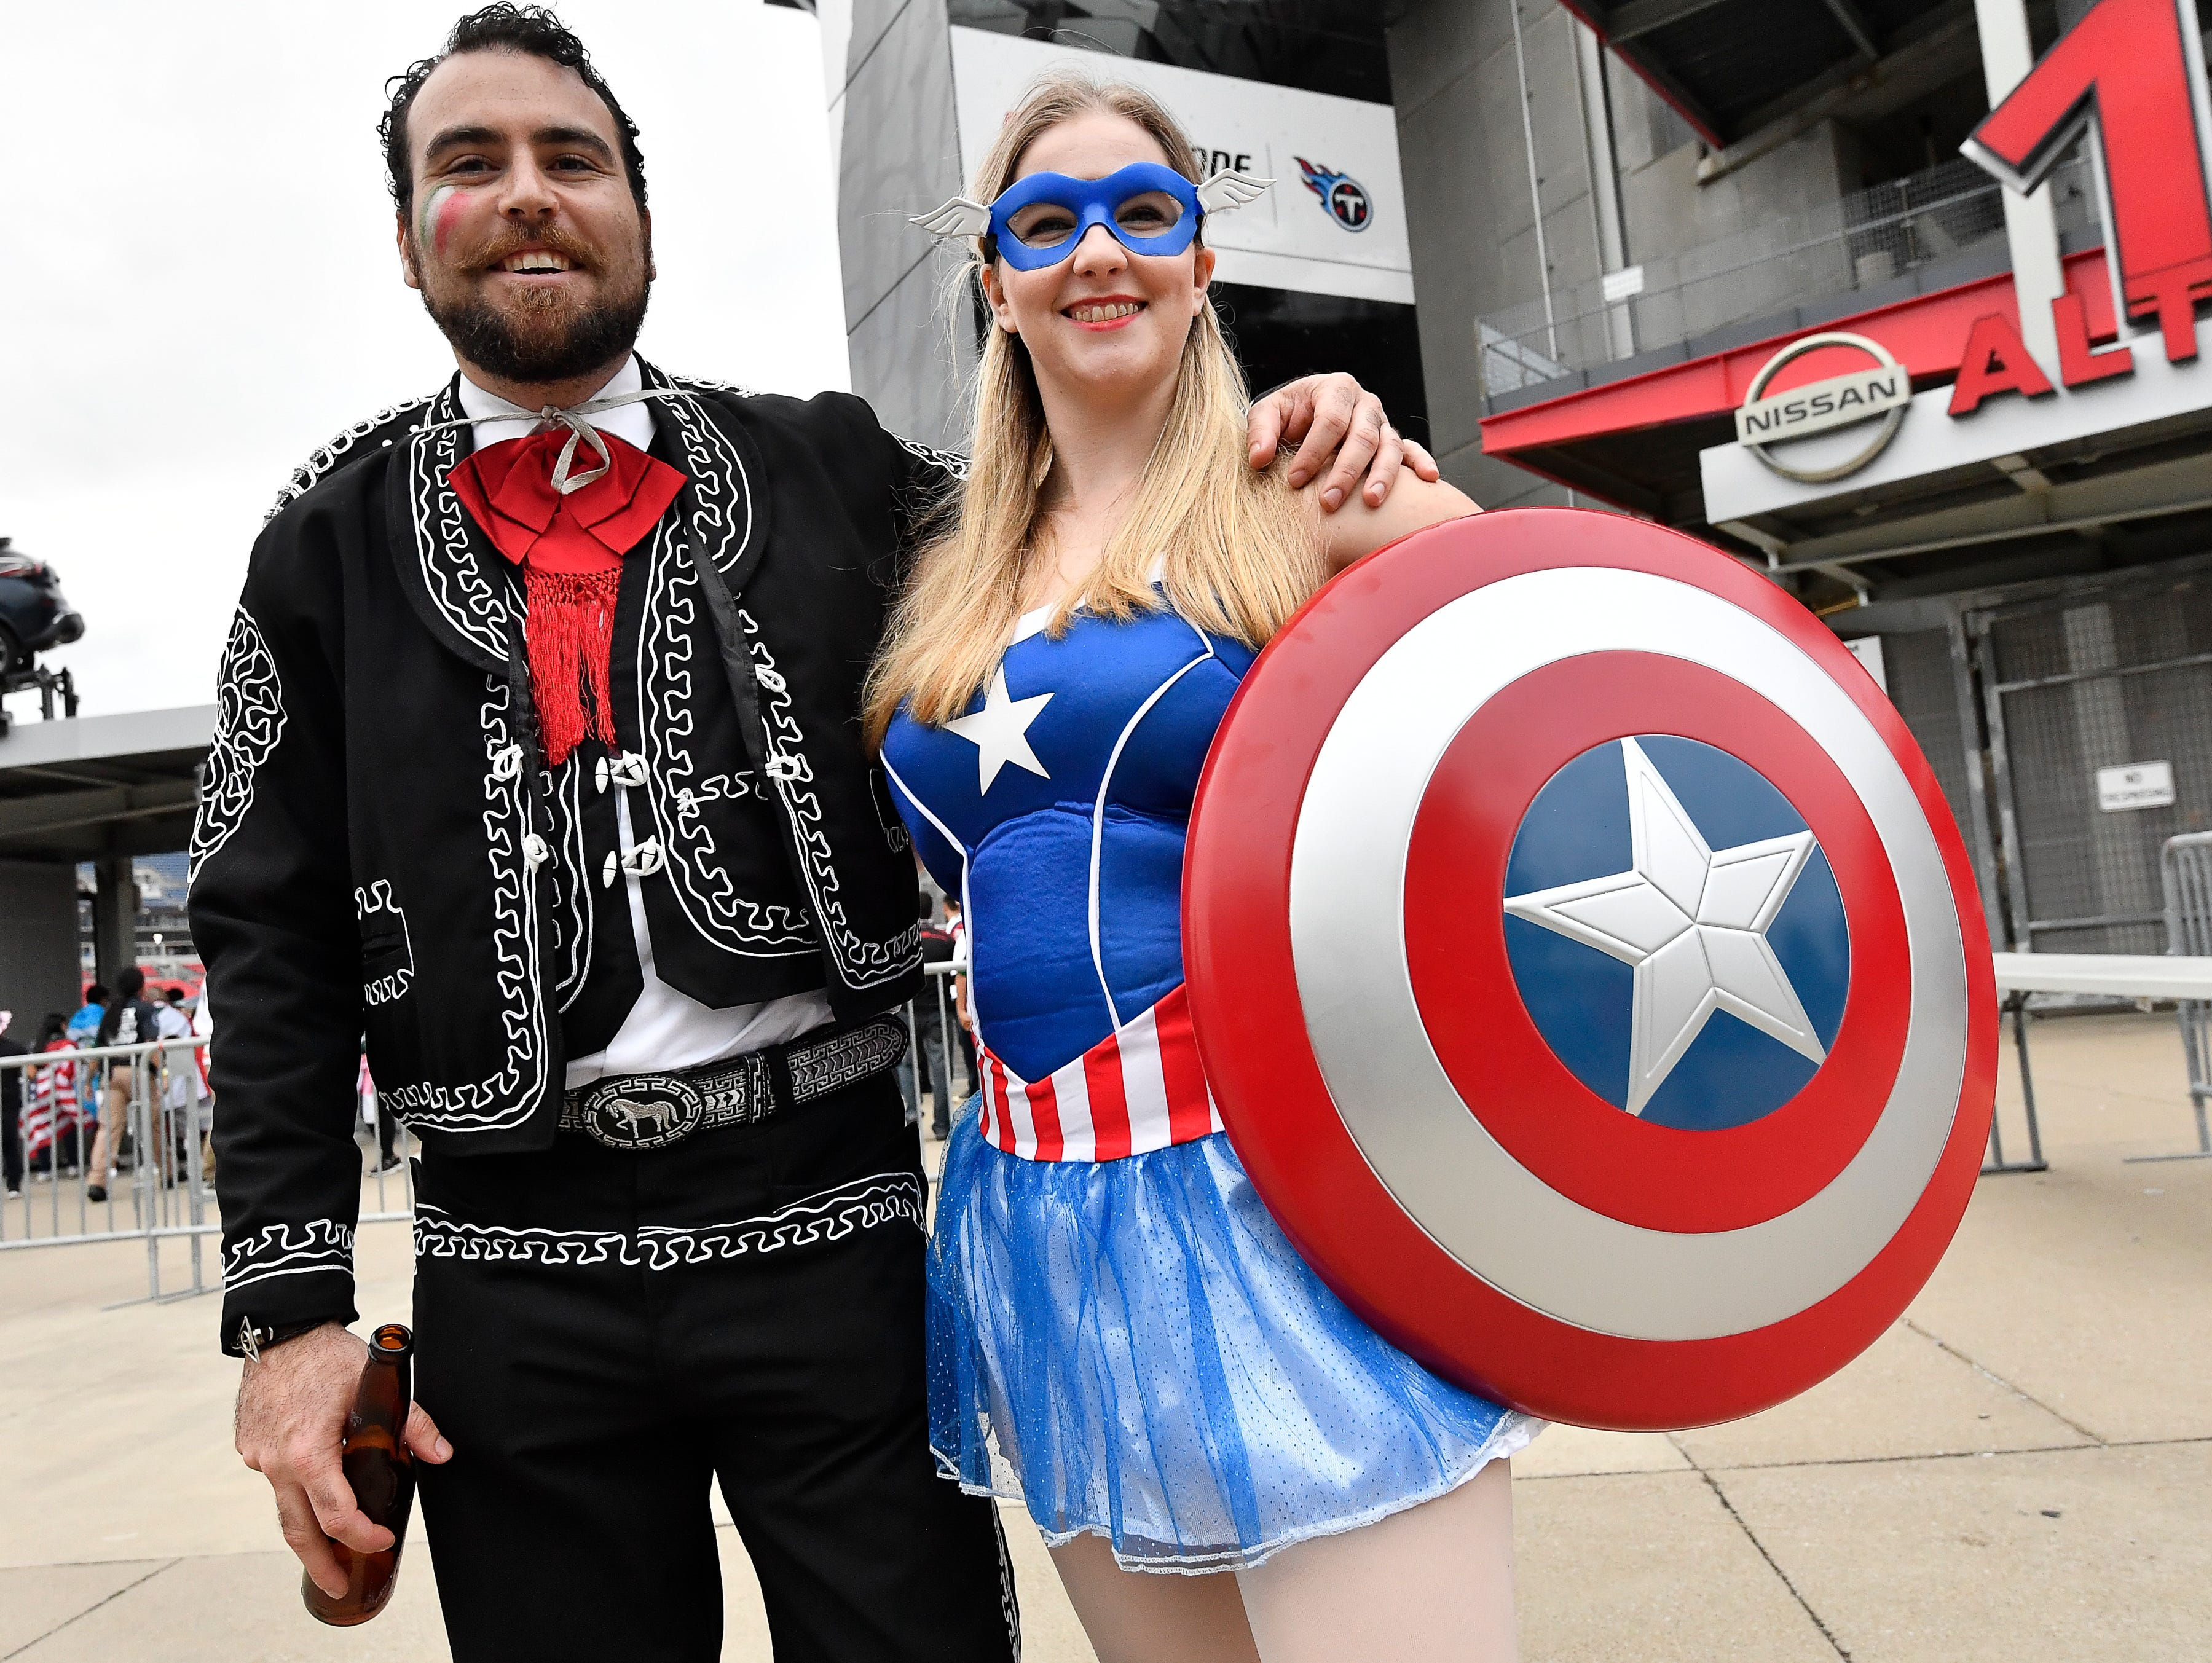 Soccer fans Alfredo Perez and Angela Thomas prepare for the USA vs. Mexico soccer match at Nissan Stadium Tuesday, Sept. 11, 2018, in Nashville, Tenn.